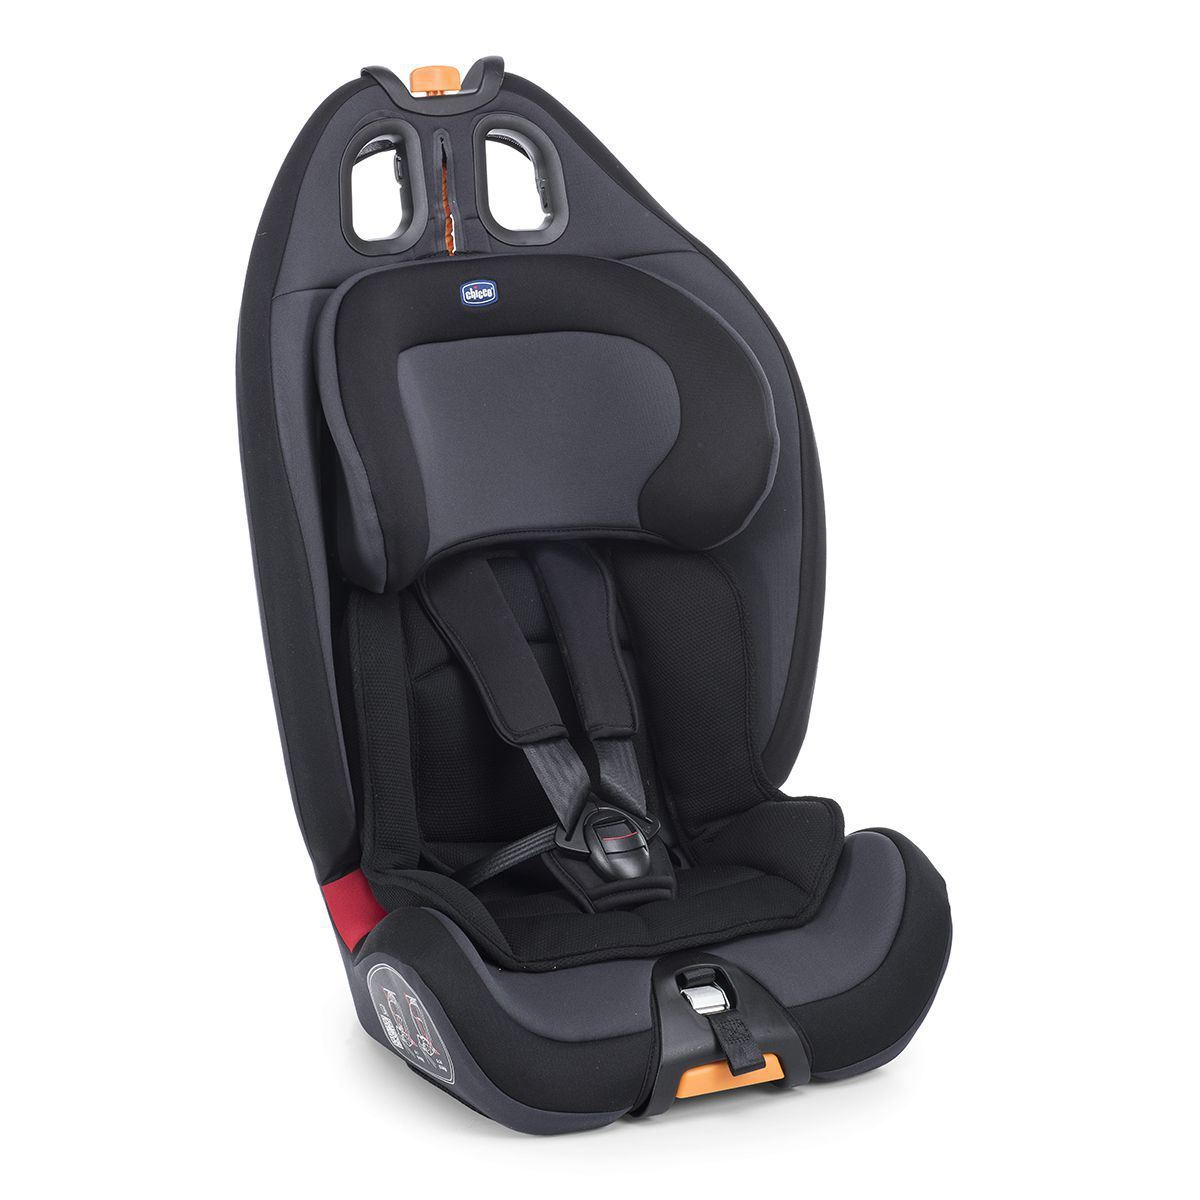 Silla de auto Gro-up123 Chicco Black night